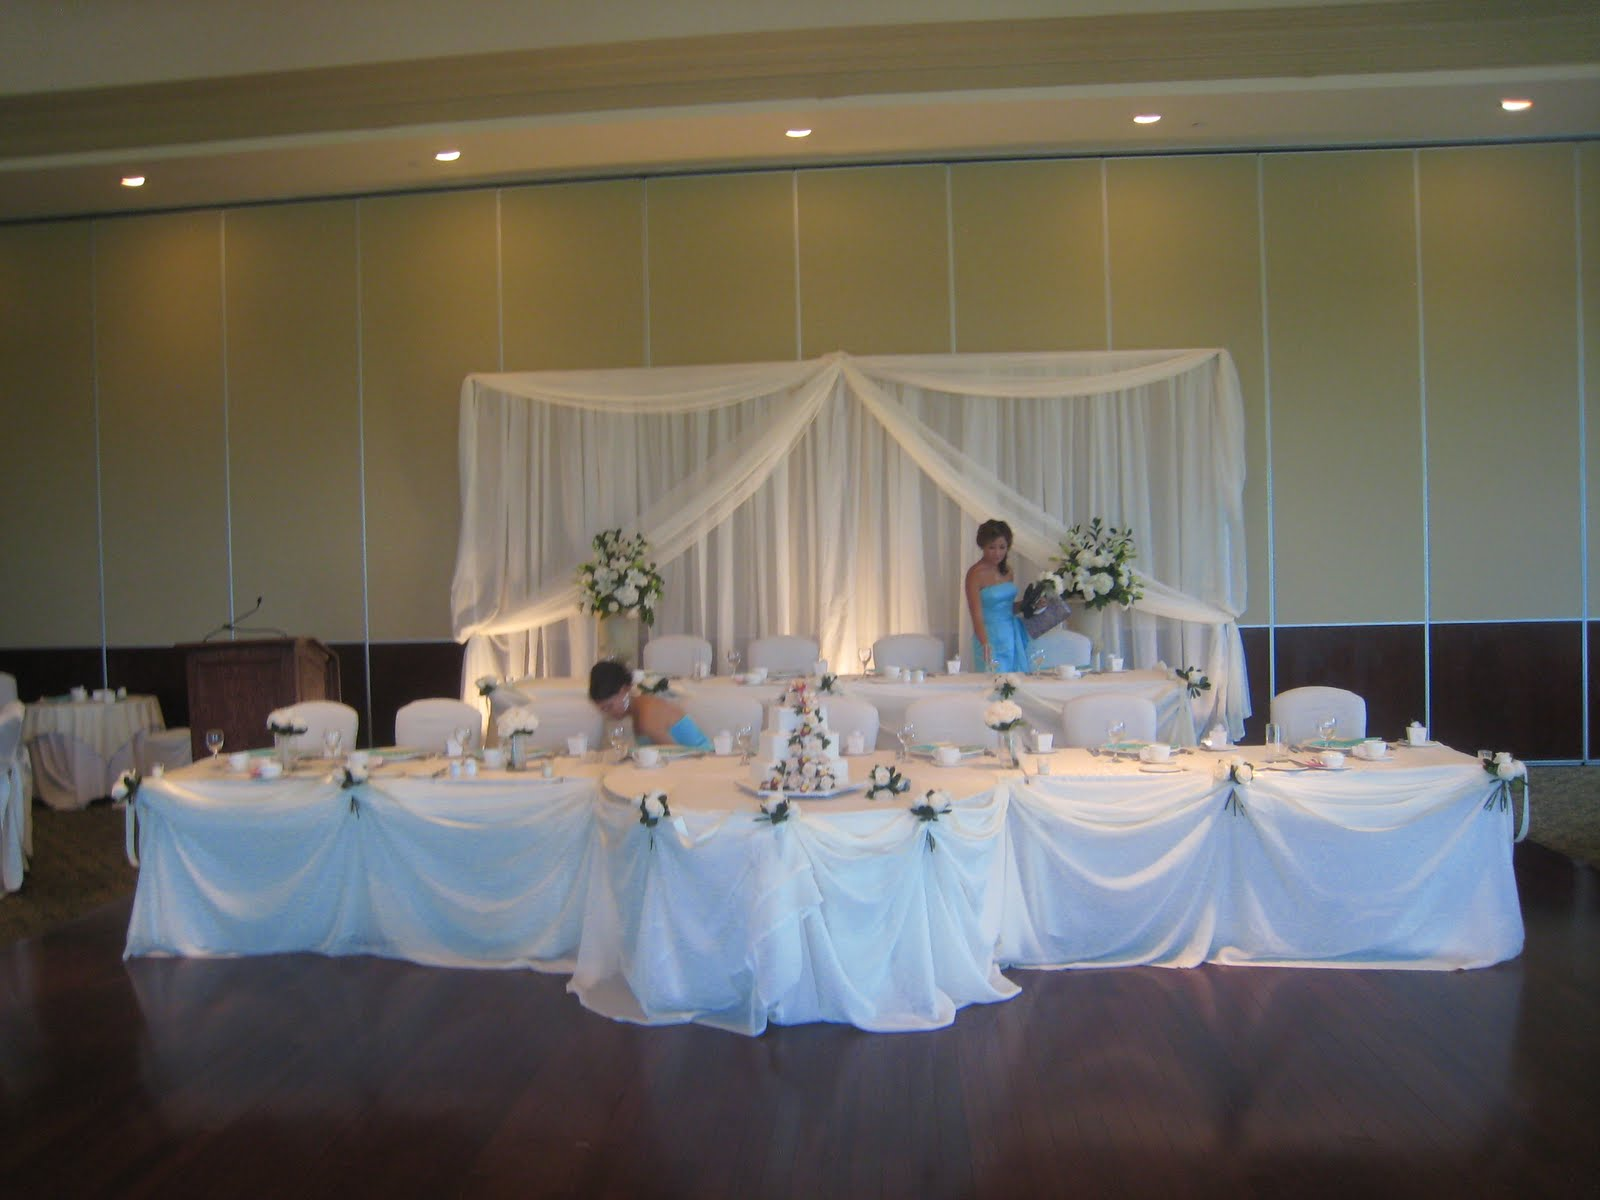 Chair Cover Rentals Alexandria Va Party Chairs And Tables Le Fabuleux Events Presents One Fab Event Glamorous